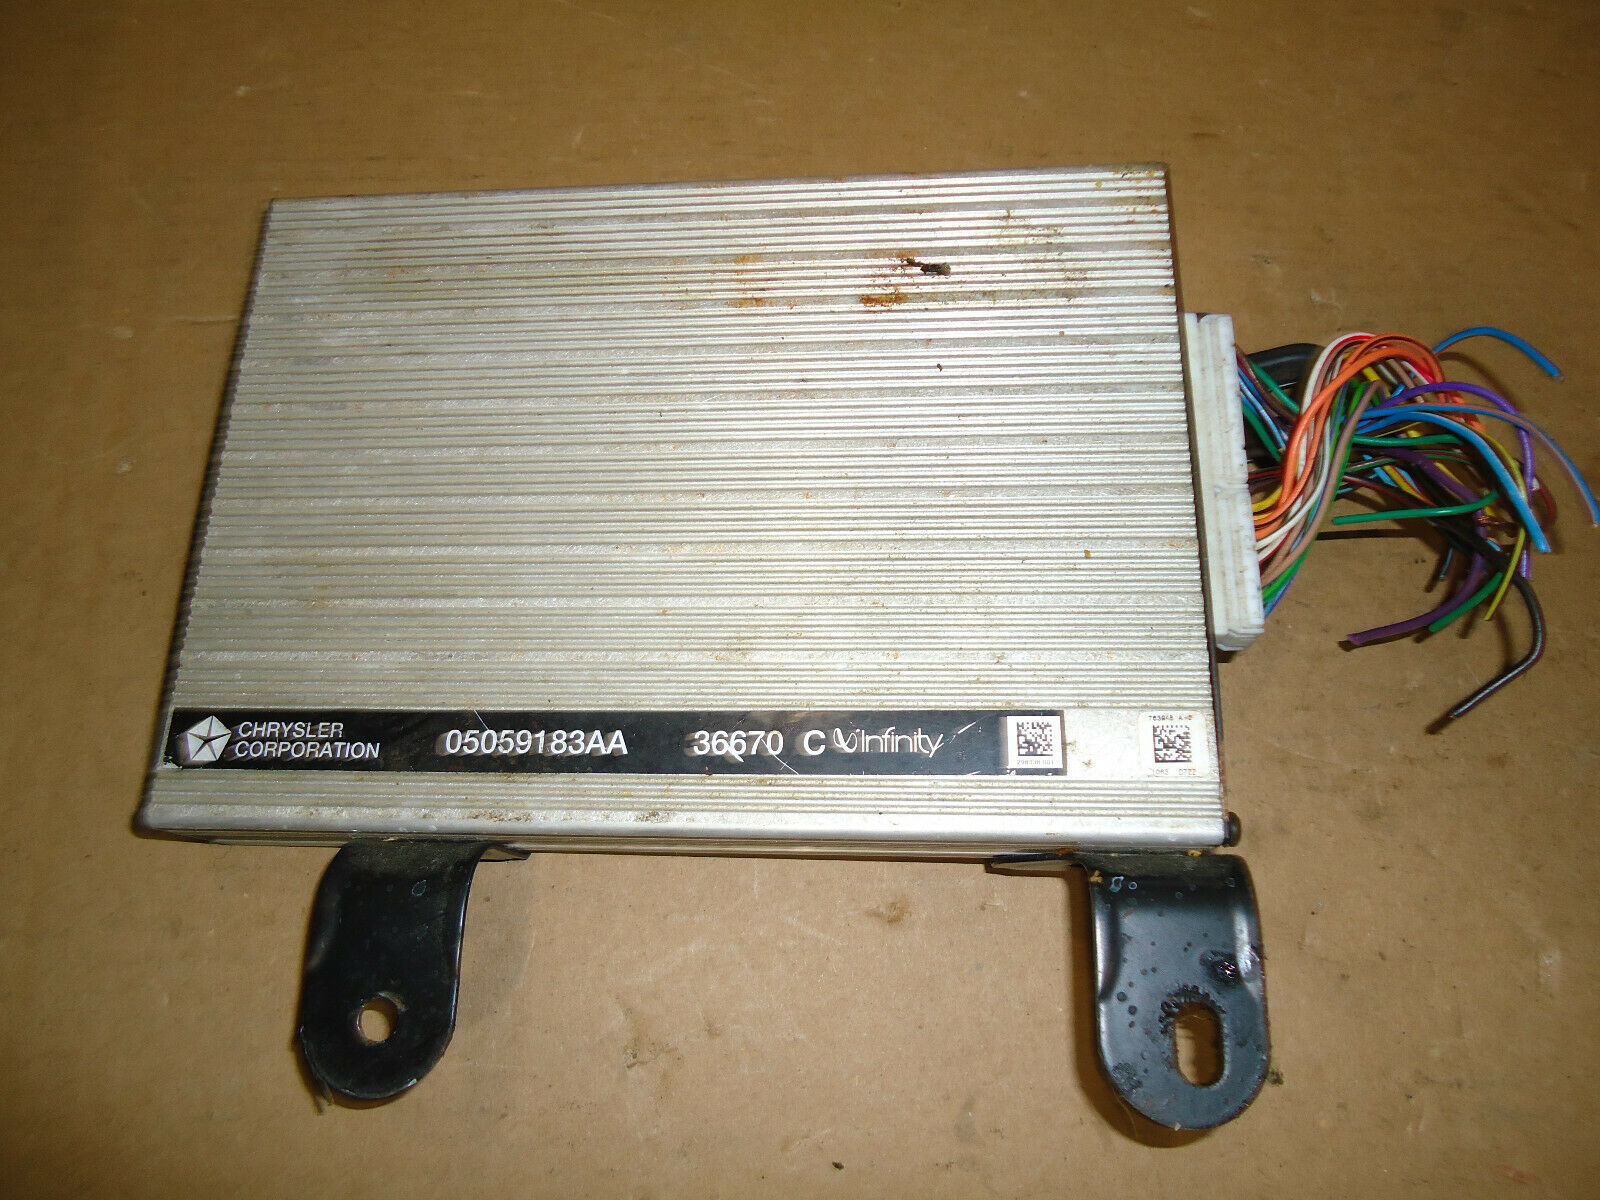 Genuine Chrysler 5035026AA Electrical Amplifier